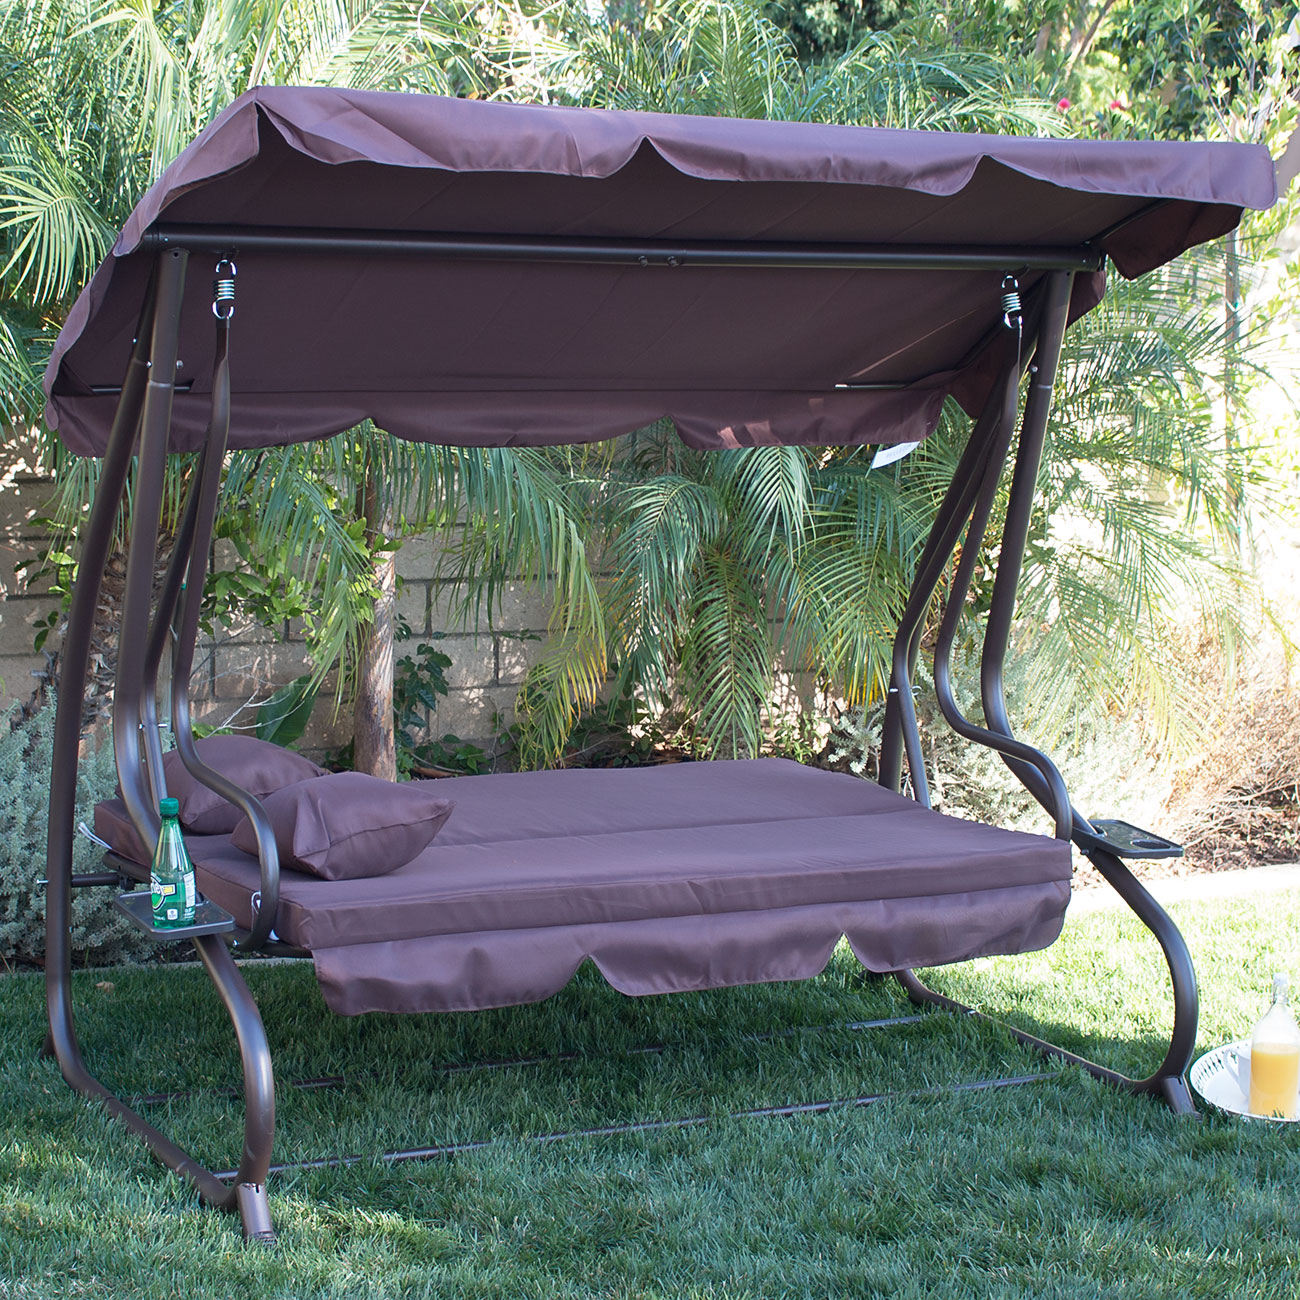 Patio Swing Chair 3 Person Outdoor Swing W Canopy Seat Patio Hammock